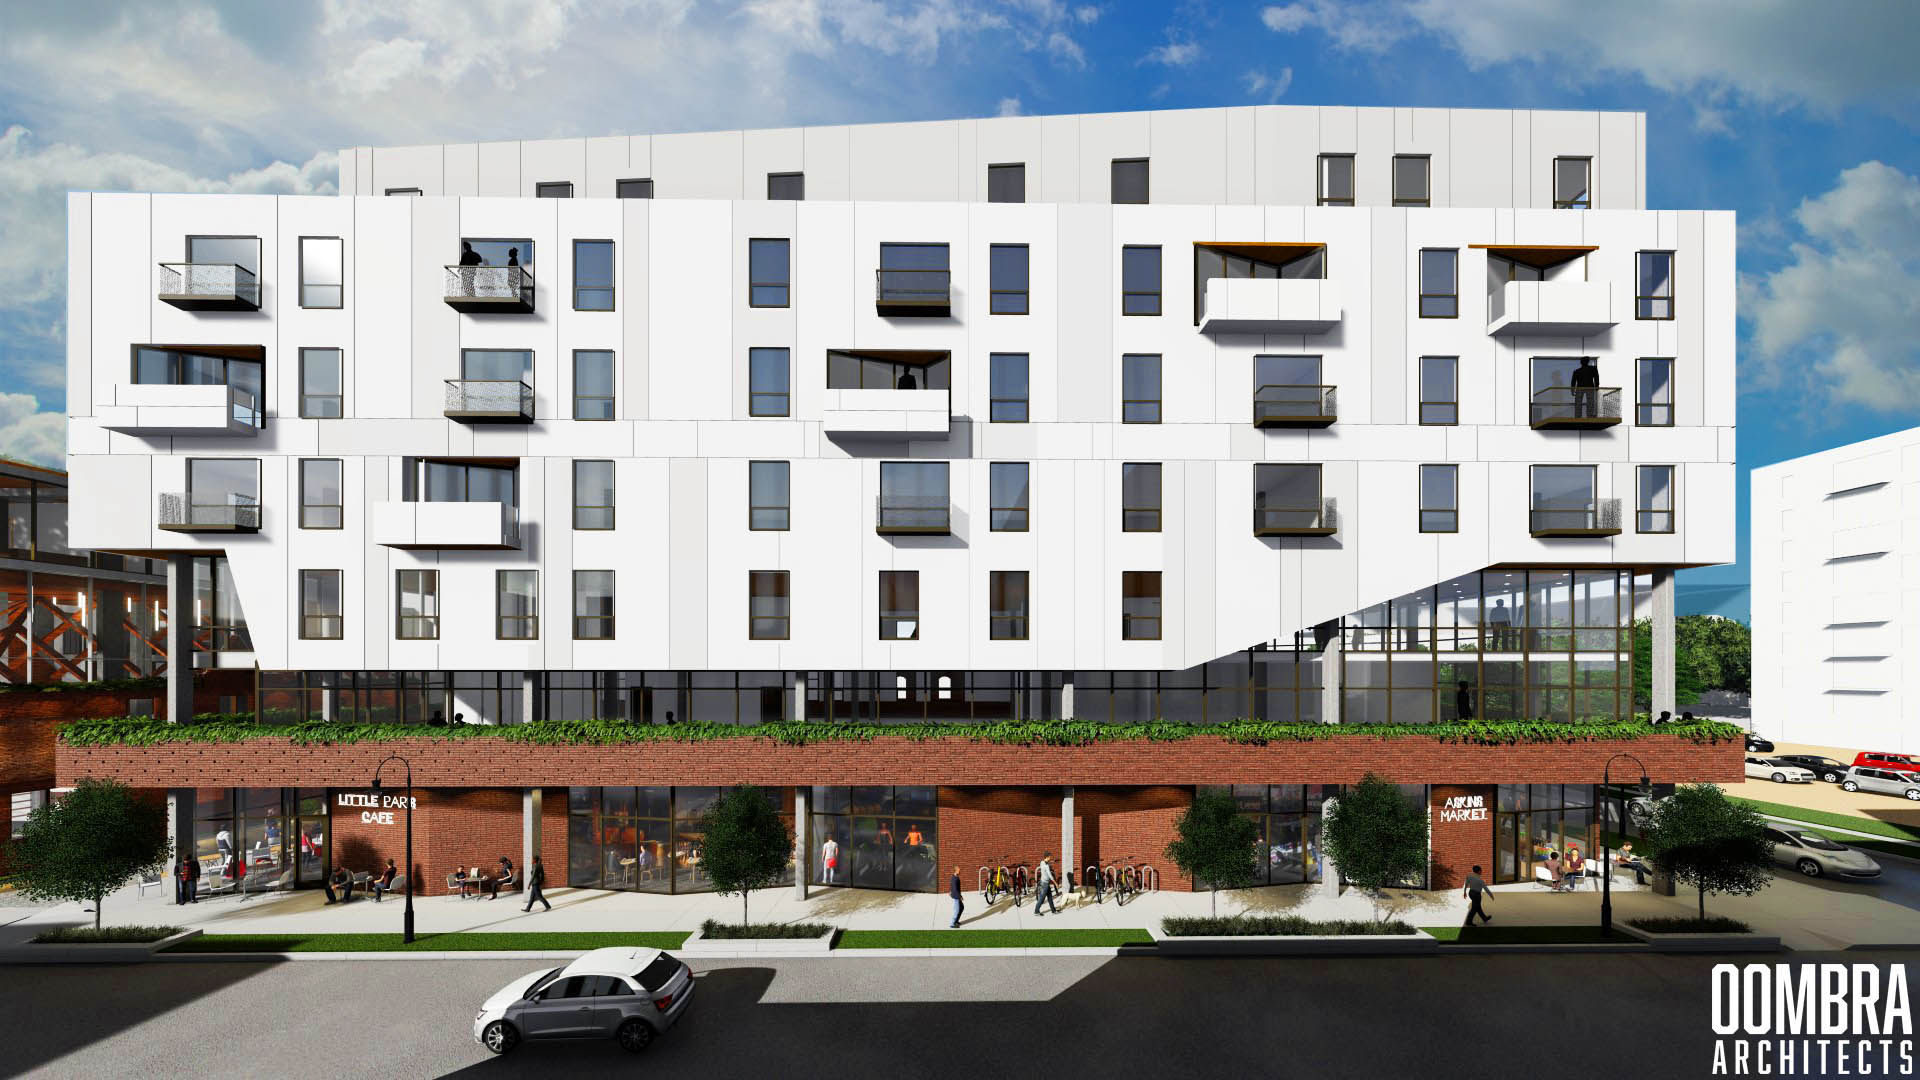 Seven story building mixed use development proposed in Brush